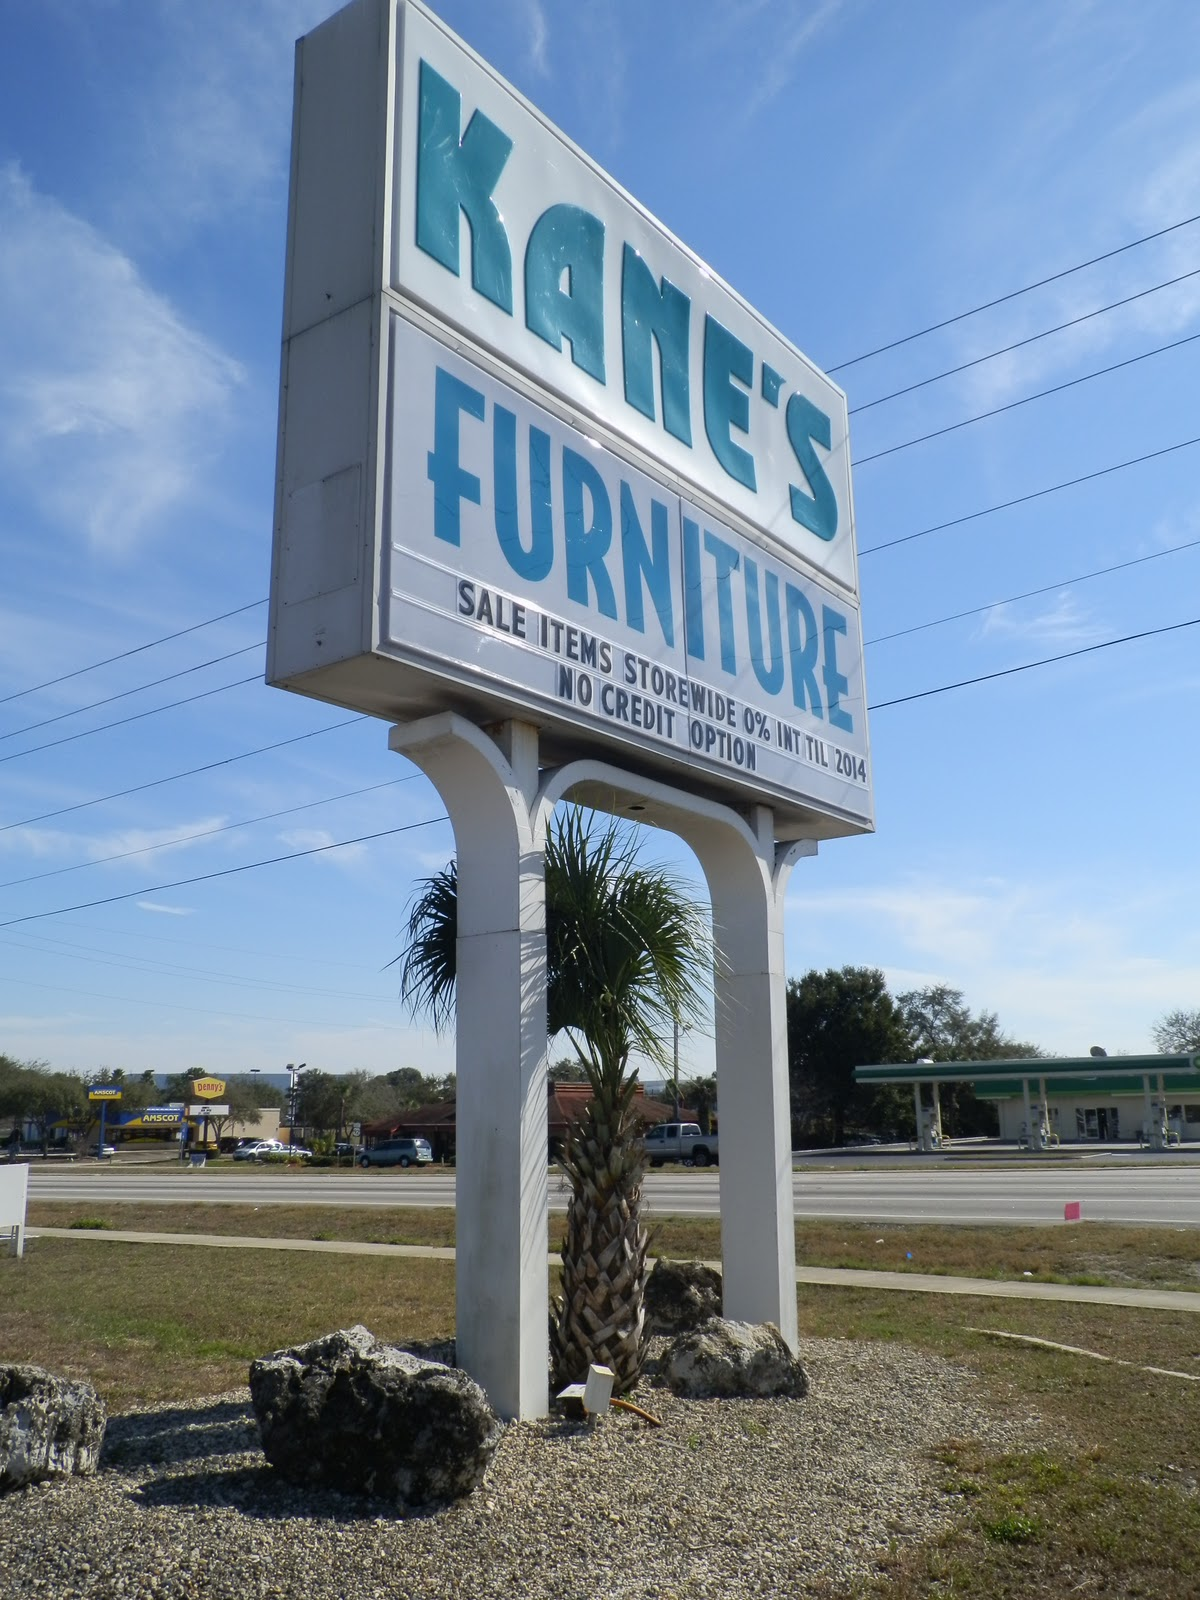 Places To Go Buildings To See Kane s Furniture Tampa